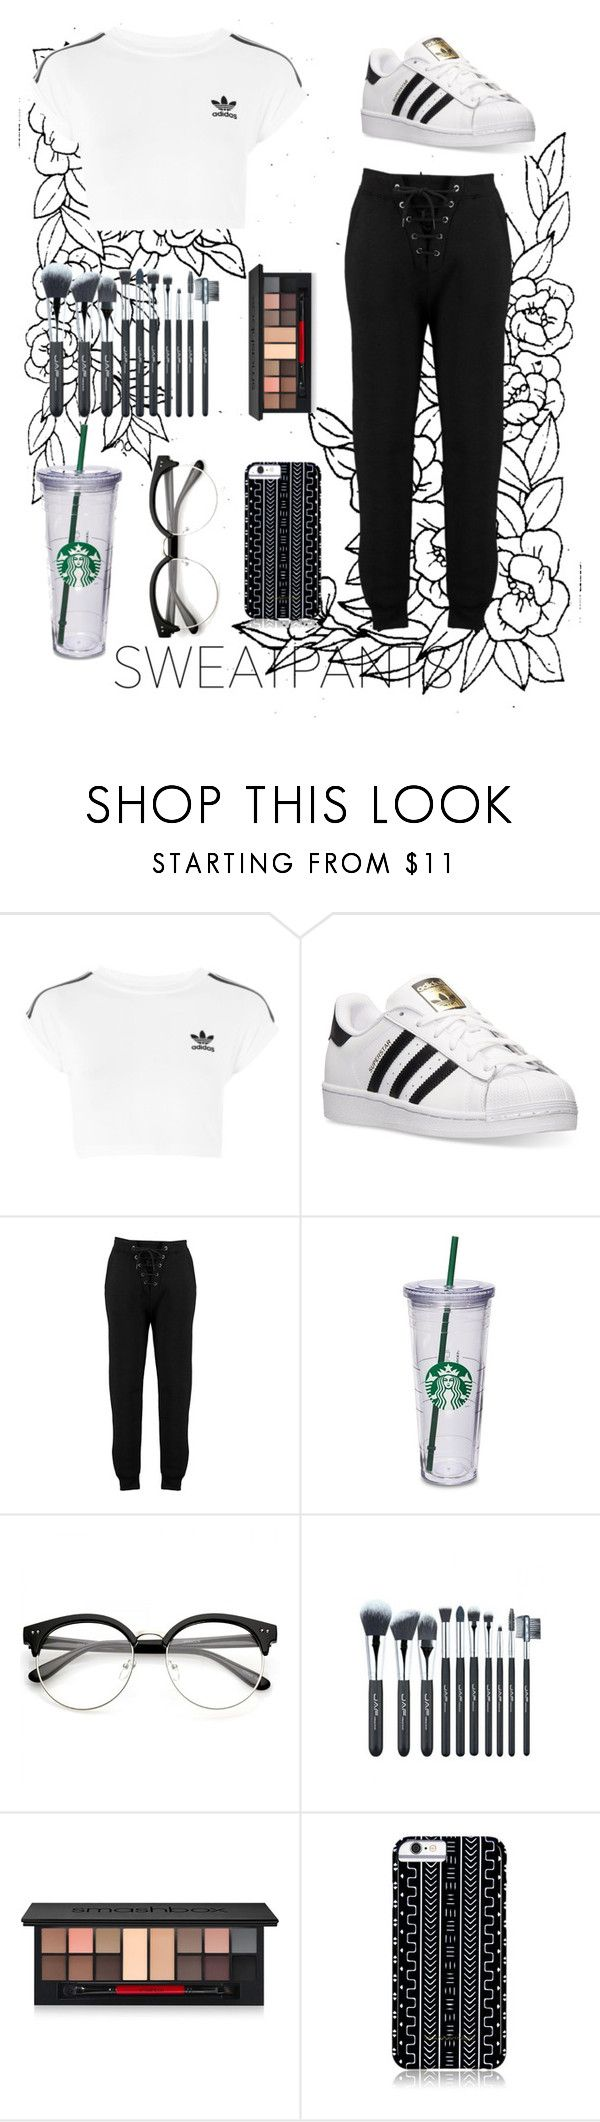 """Sweatpants"" by princess-maggi-lou ❤ liked on Polyvore featuring adidas, Boohoo, Smashbox and Savannah Hayes"